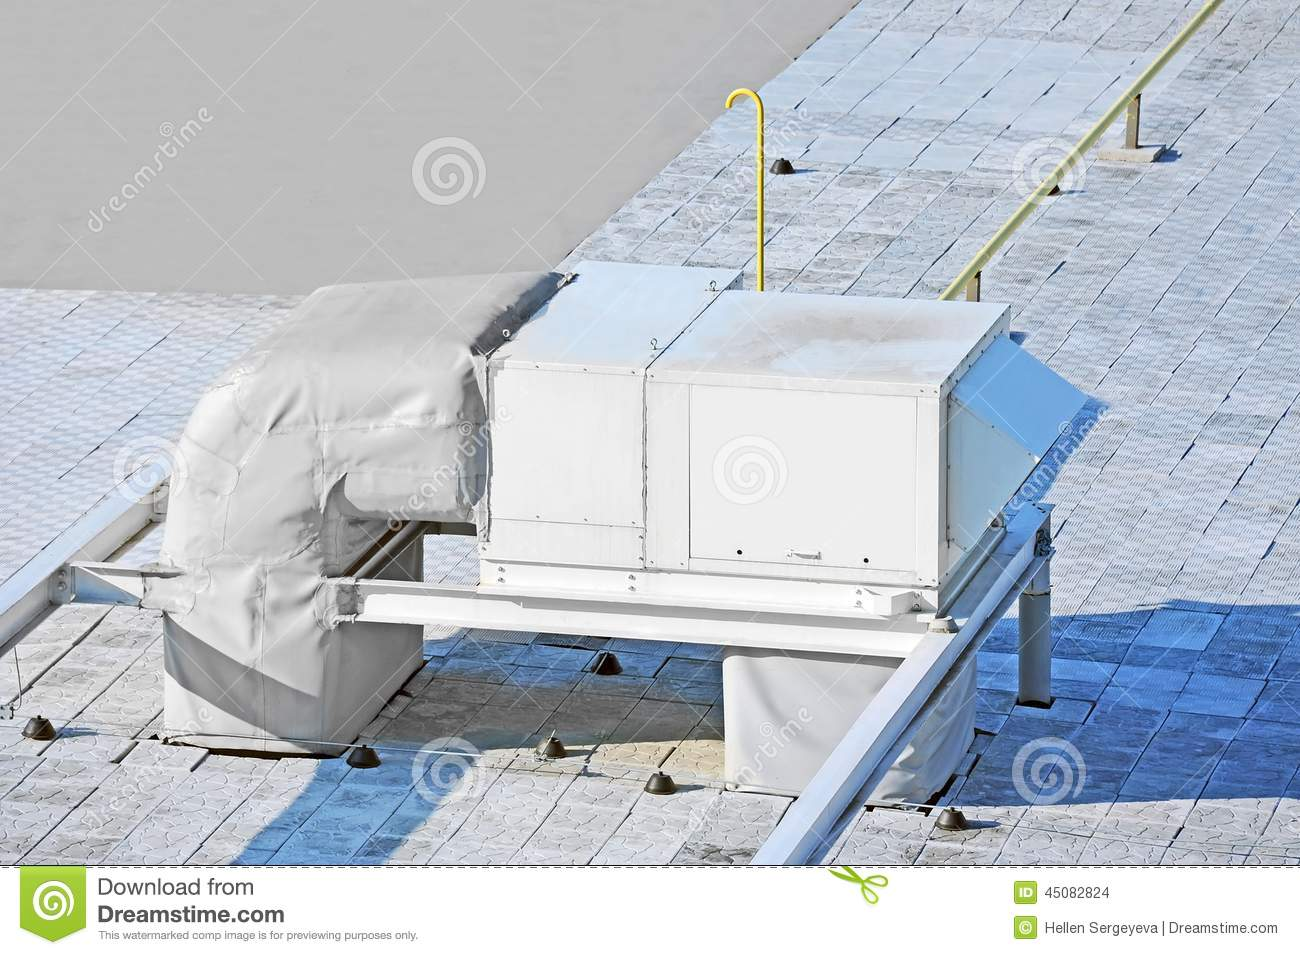 Industrial Ventilation System Stock Photo Image: 45082824 #81A229